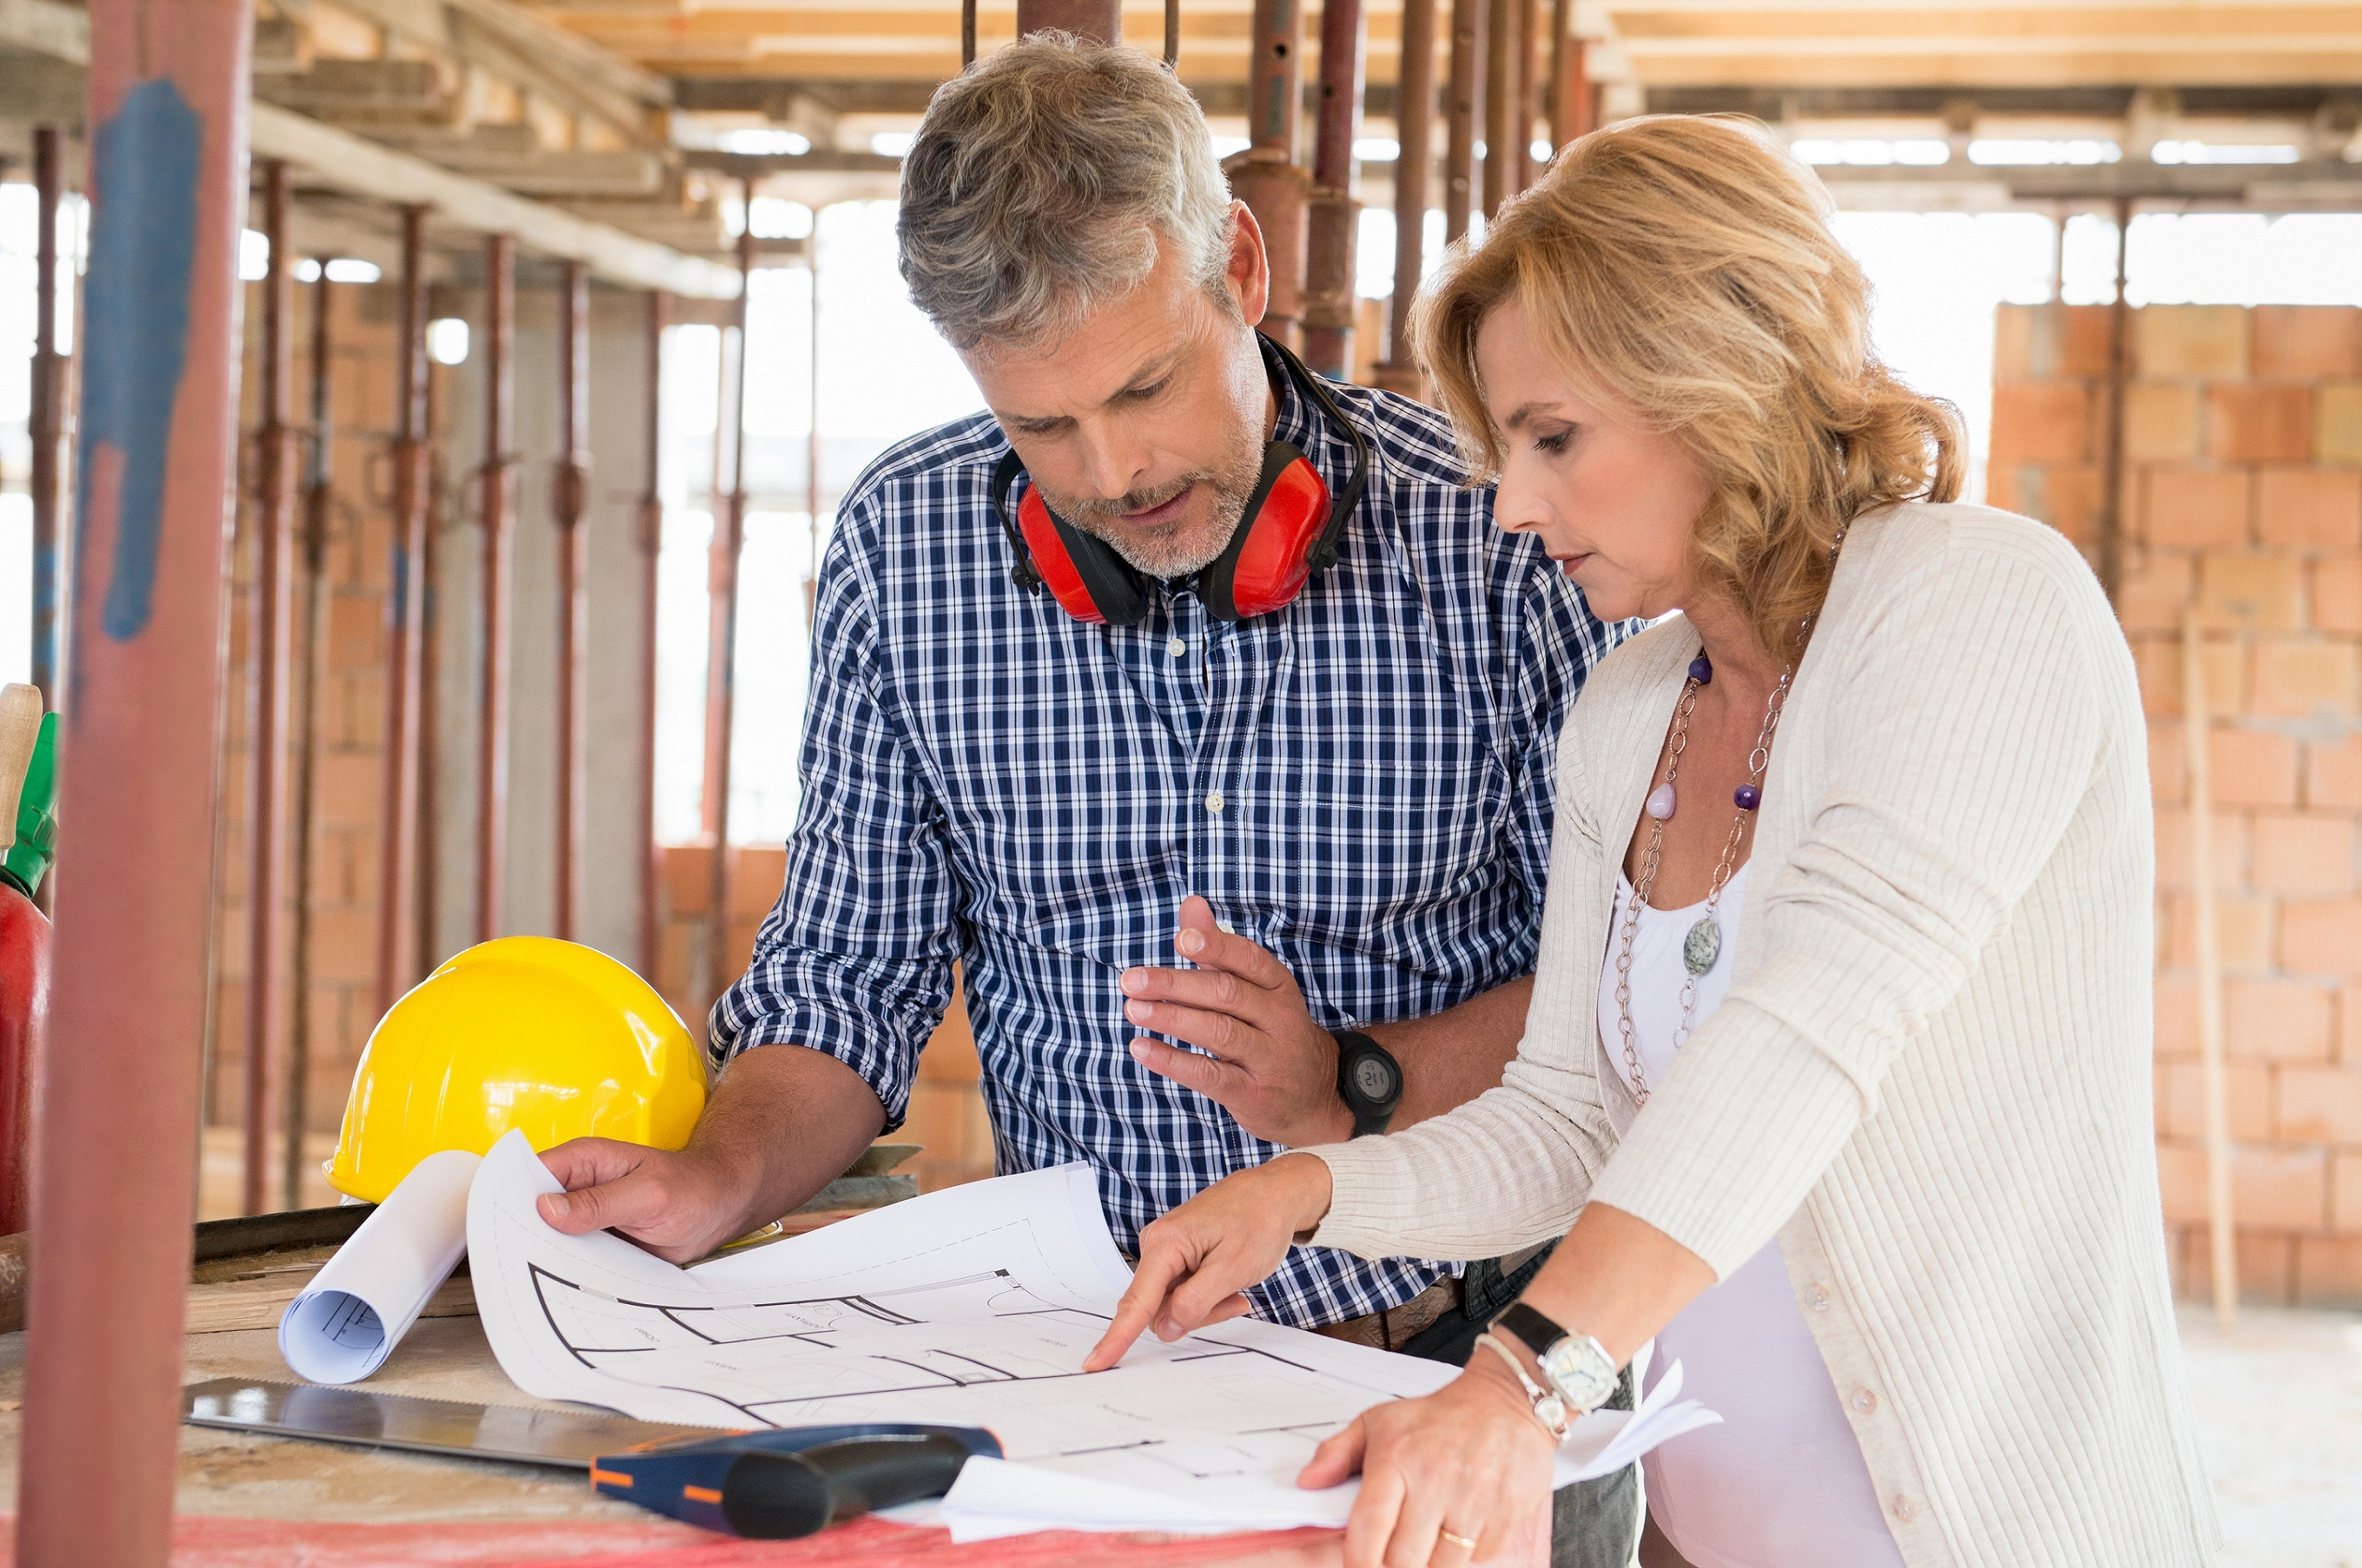 Man and woman discussing construction